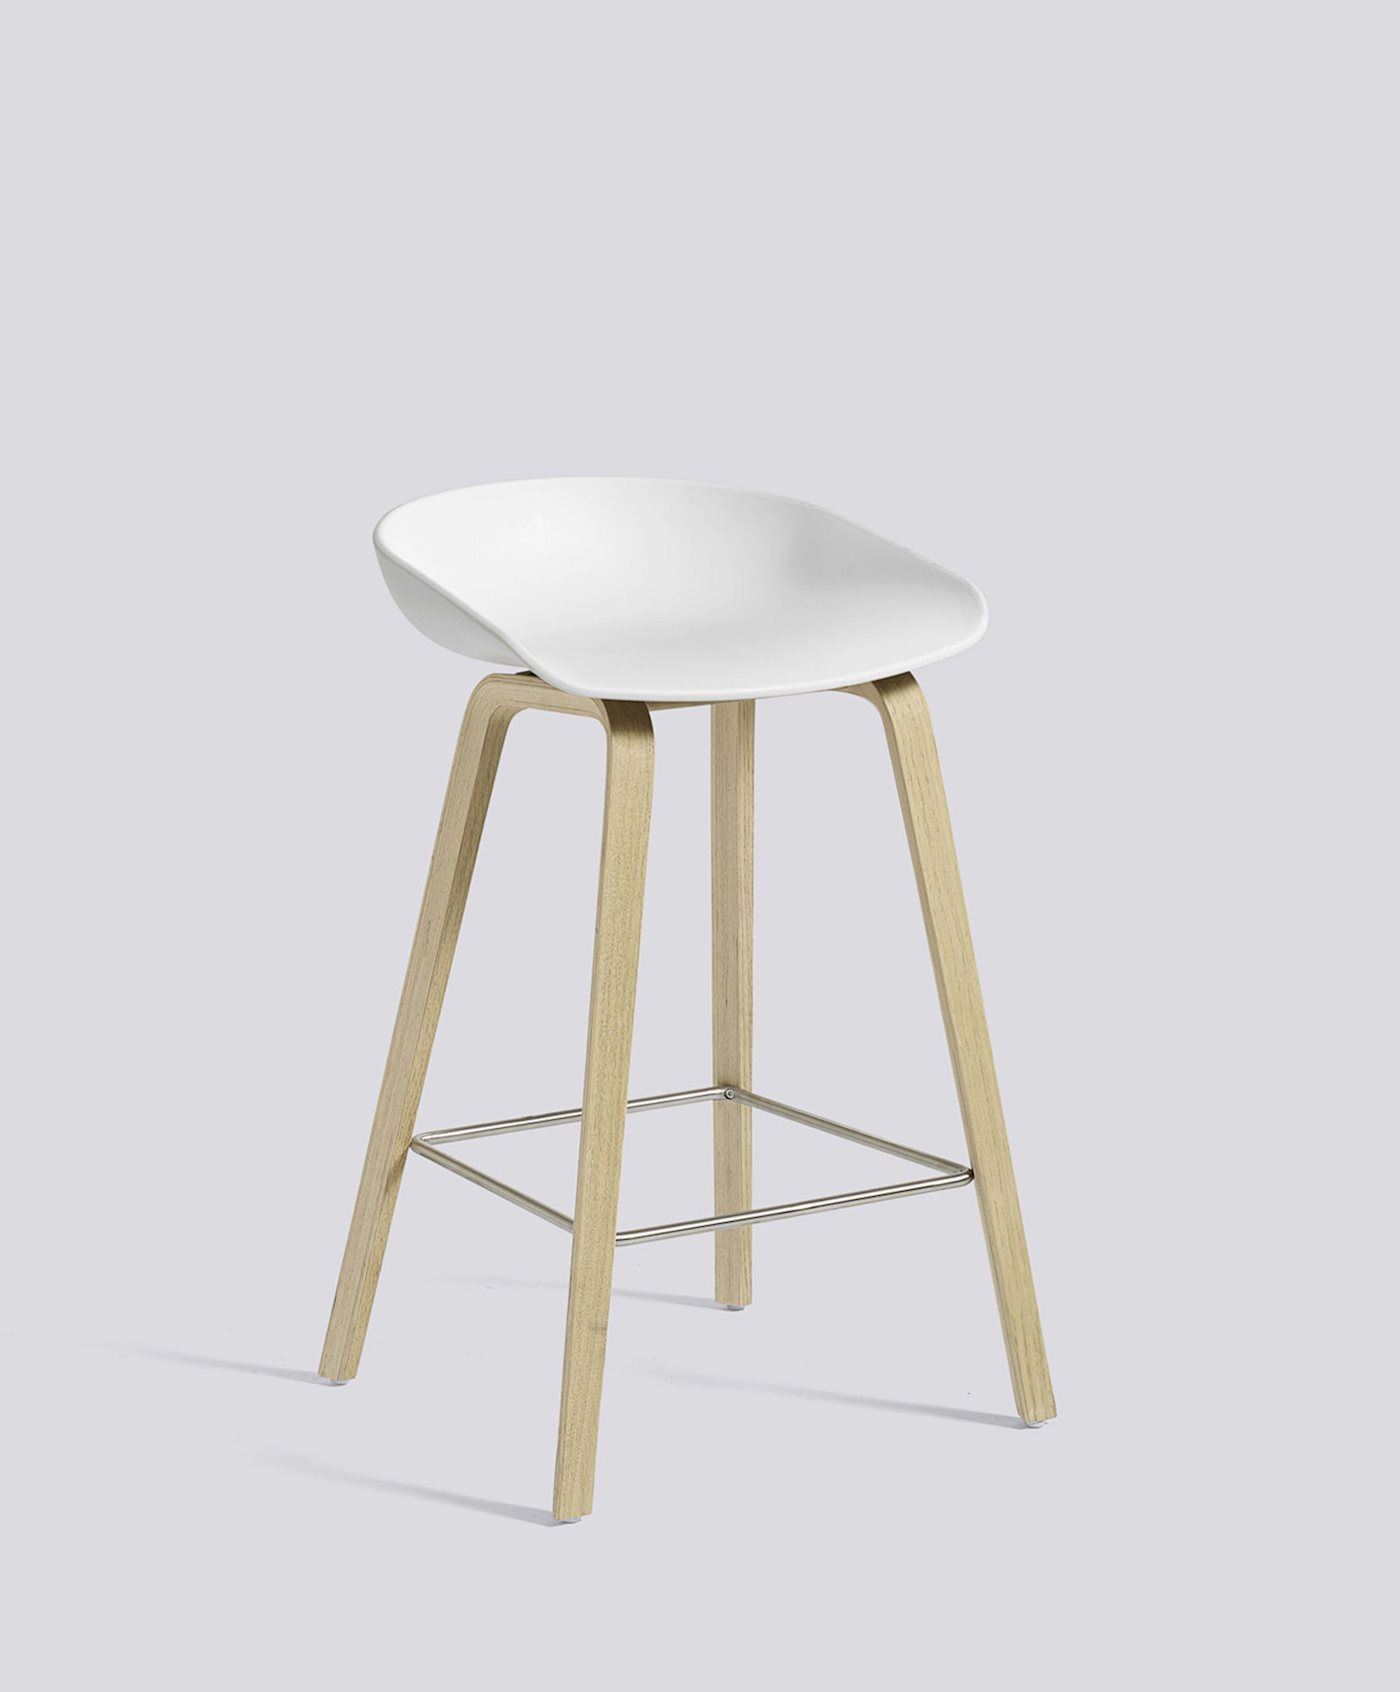 Phenomenal Aas32 Oak Soap Low White Shell W Stainless Steel Footrest Caraccident5 Cool Chair Designs And Ideas Caraccident5Info